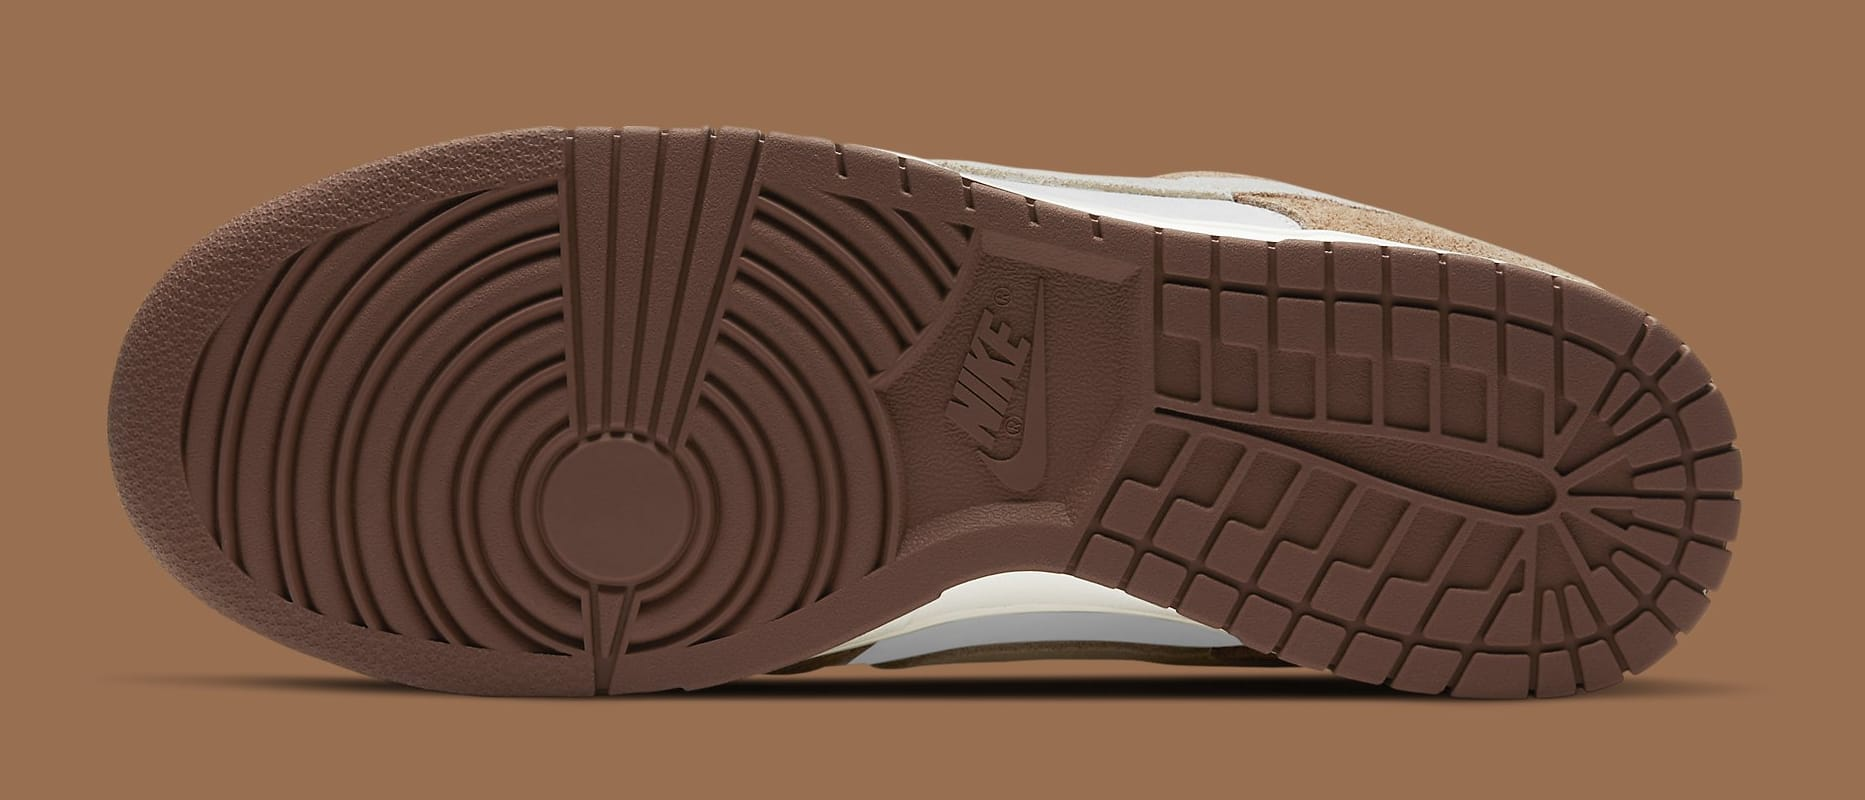 Nike Dunk Low 'Medium Curry' DD1390-100 Outsole